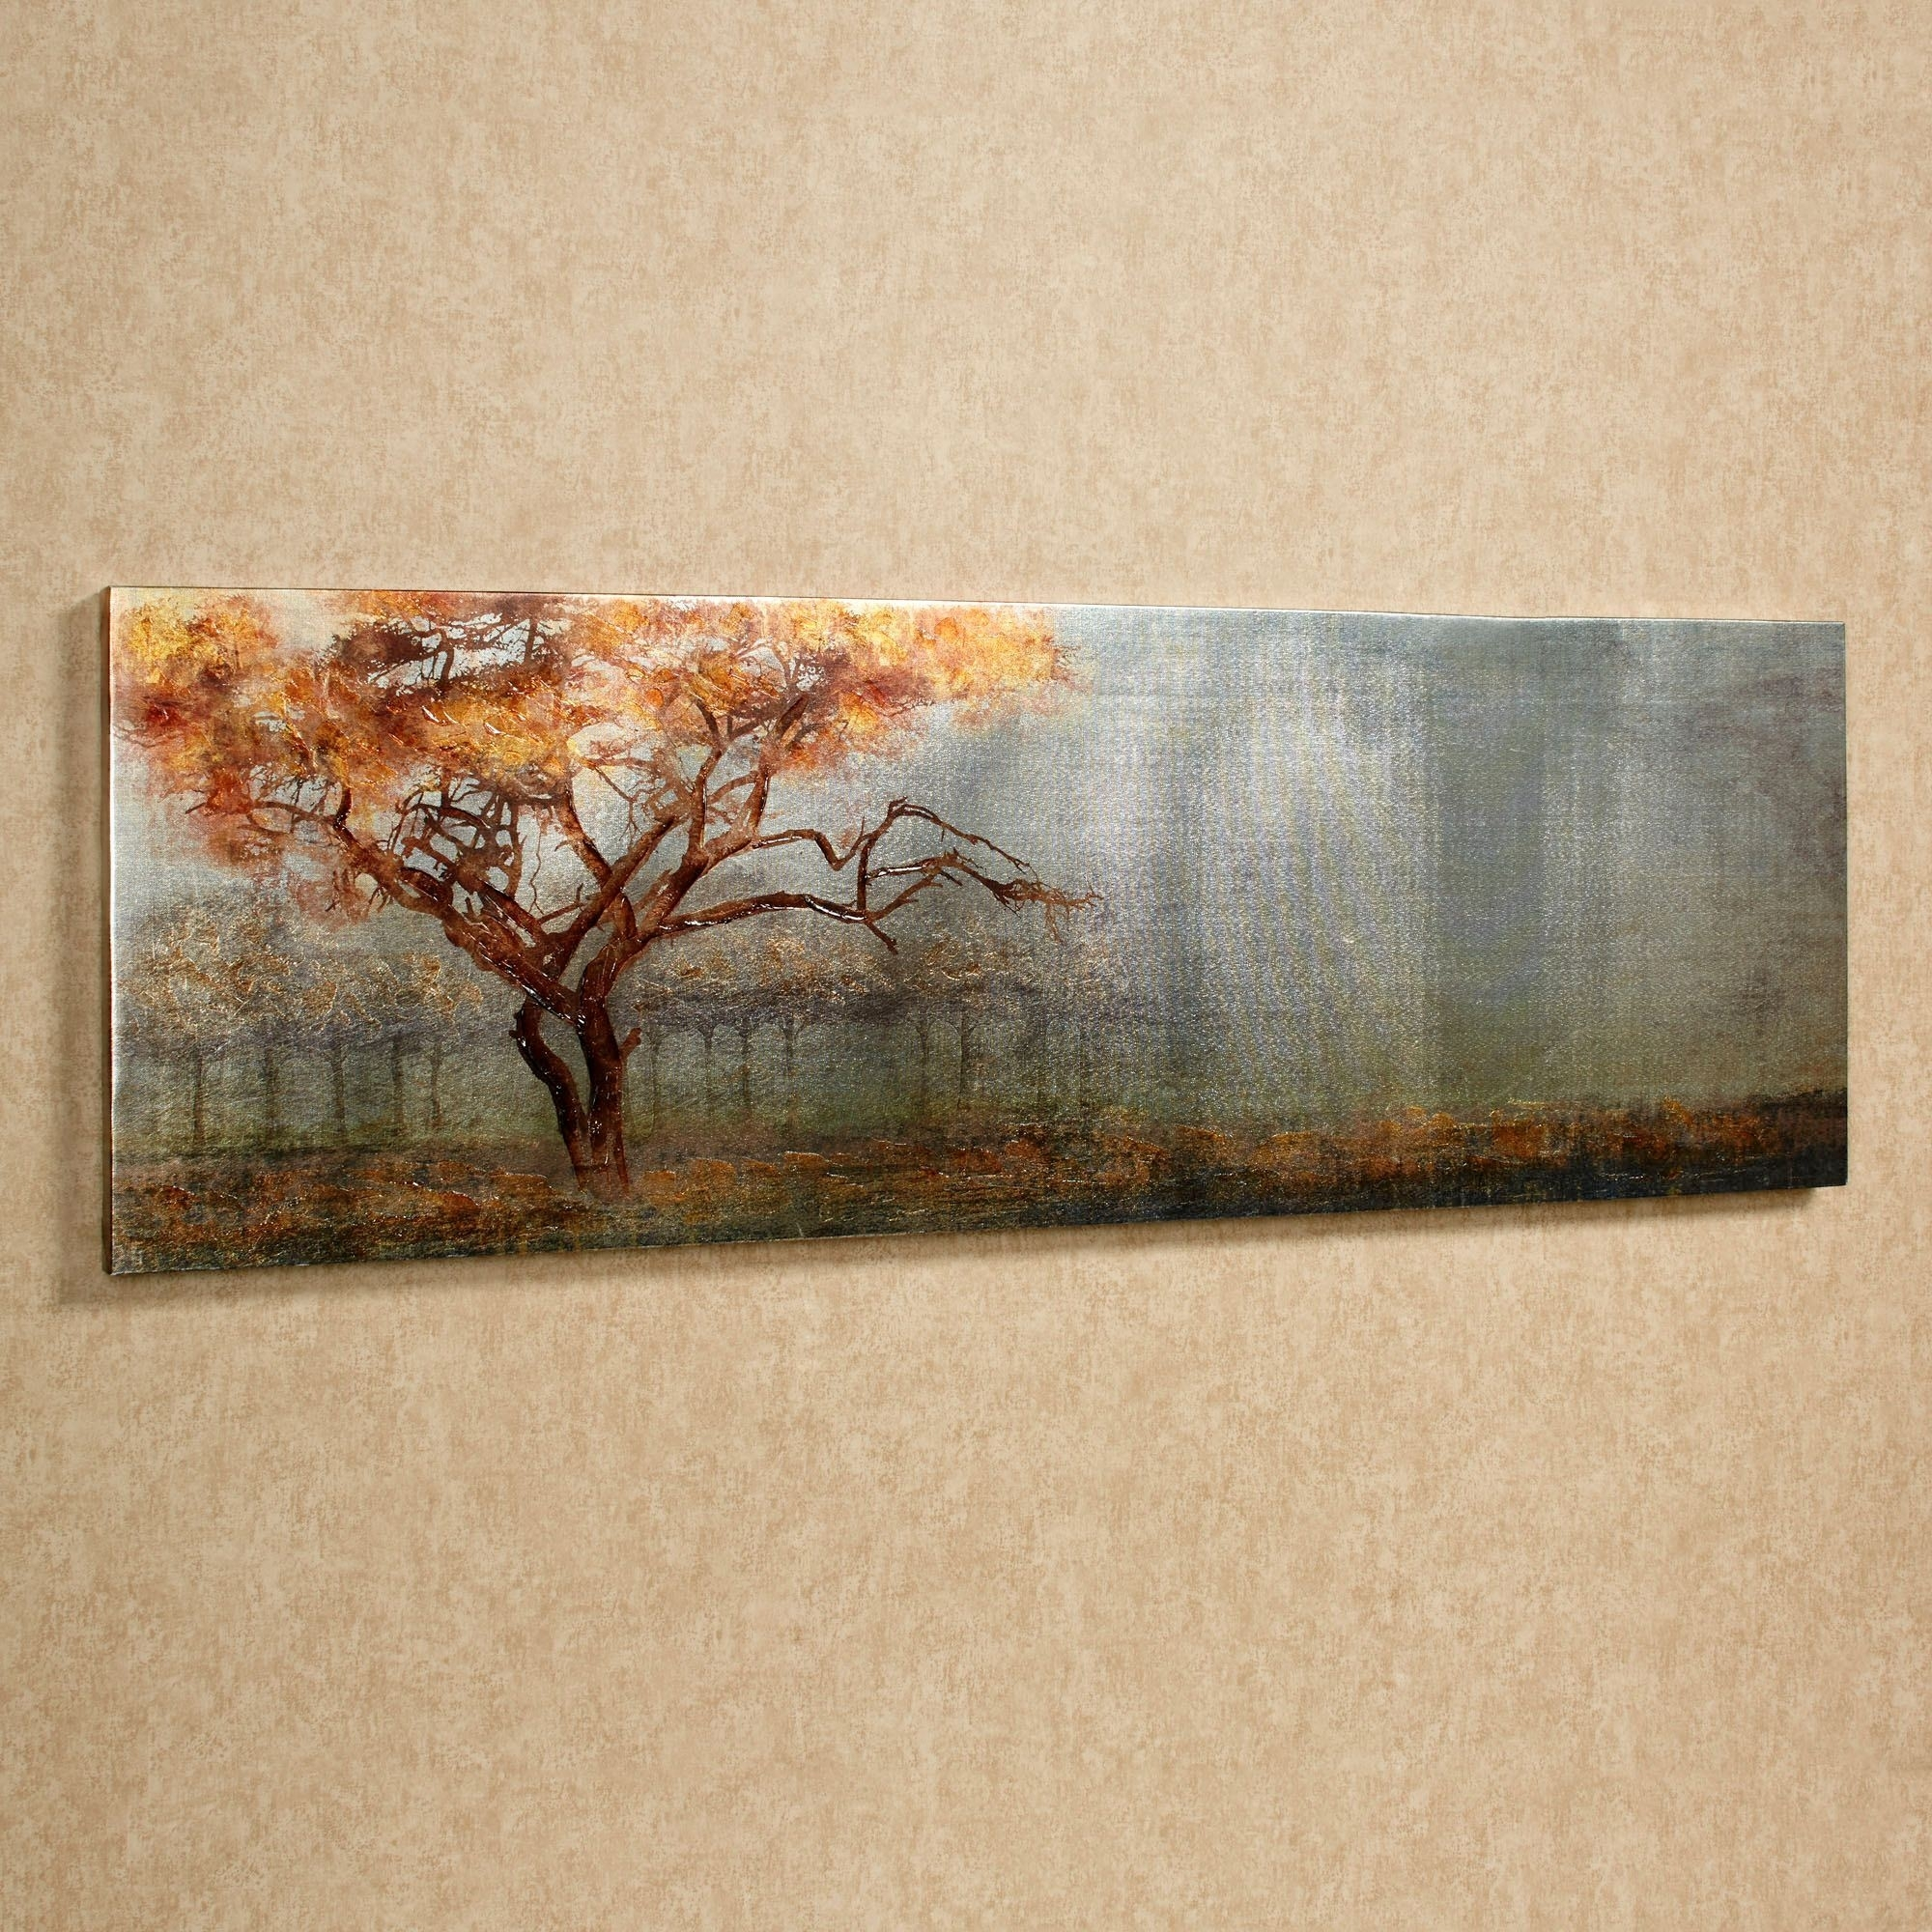 Serengeti Tree Canvas Wall Art Intended For 2018 Canvas Wall Art Of Trees (View 12 of 15)